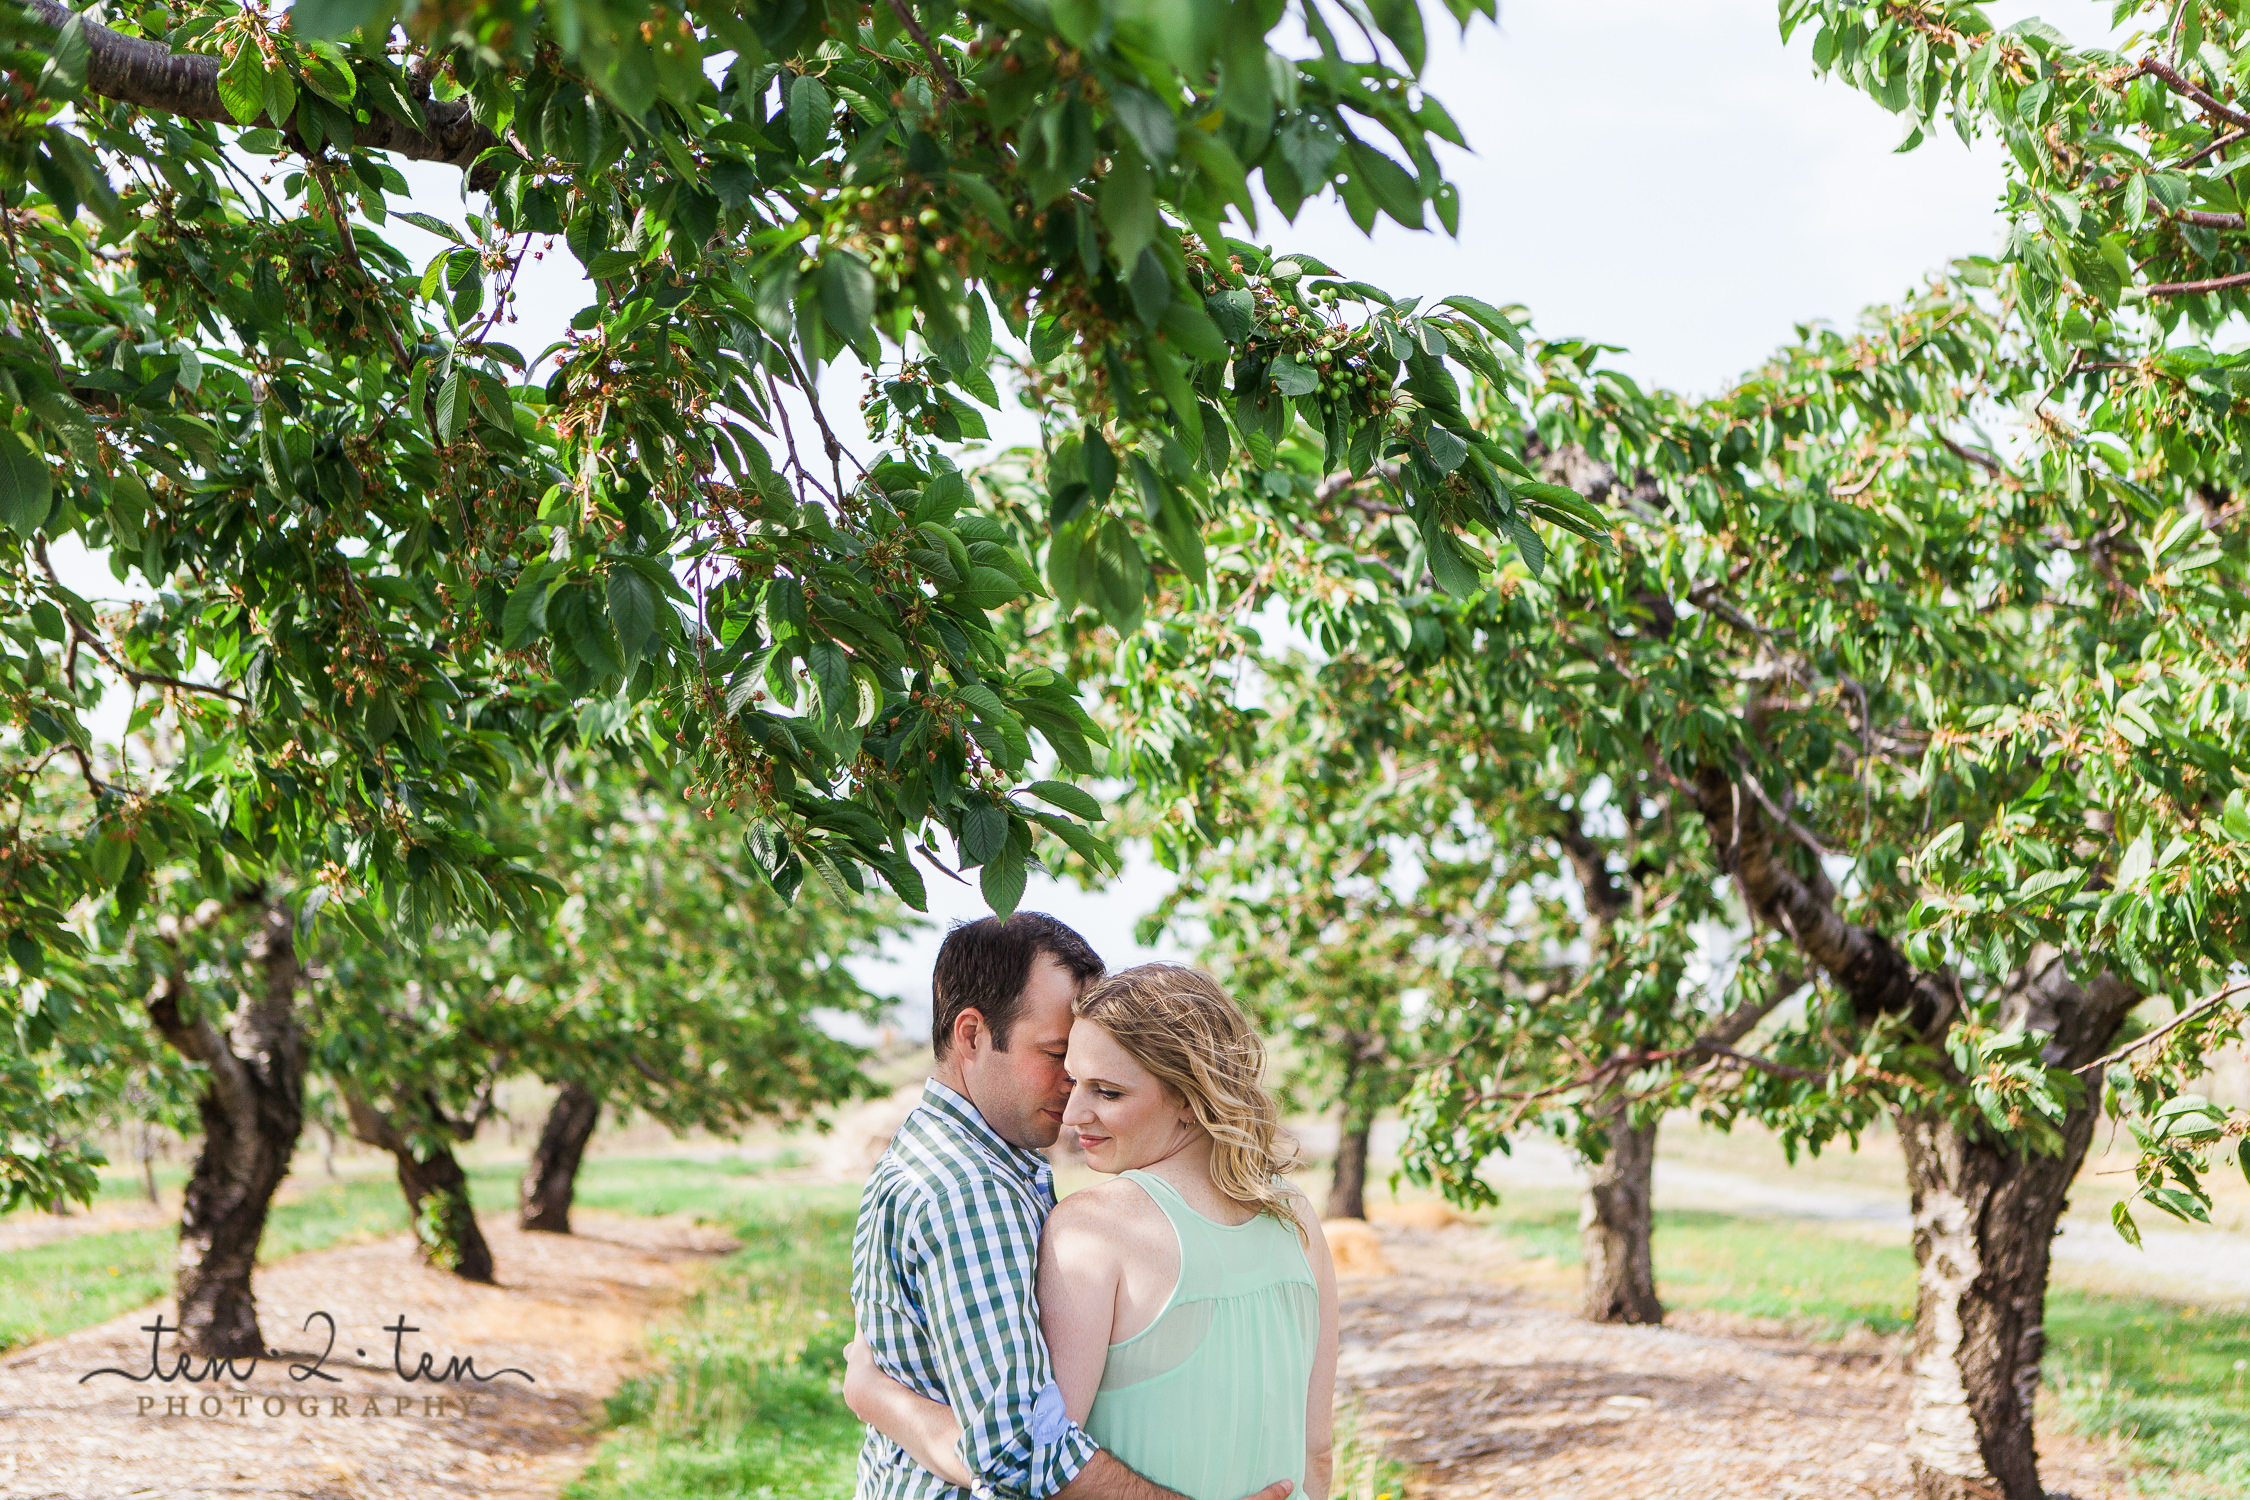 pillitteri estates engagement photos, pillitteri estates winery engagement photos, niagara winery engagement, ontario vineyard engagement photos, vineyard engagement photos